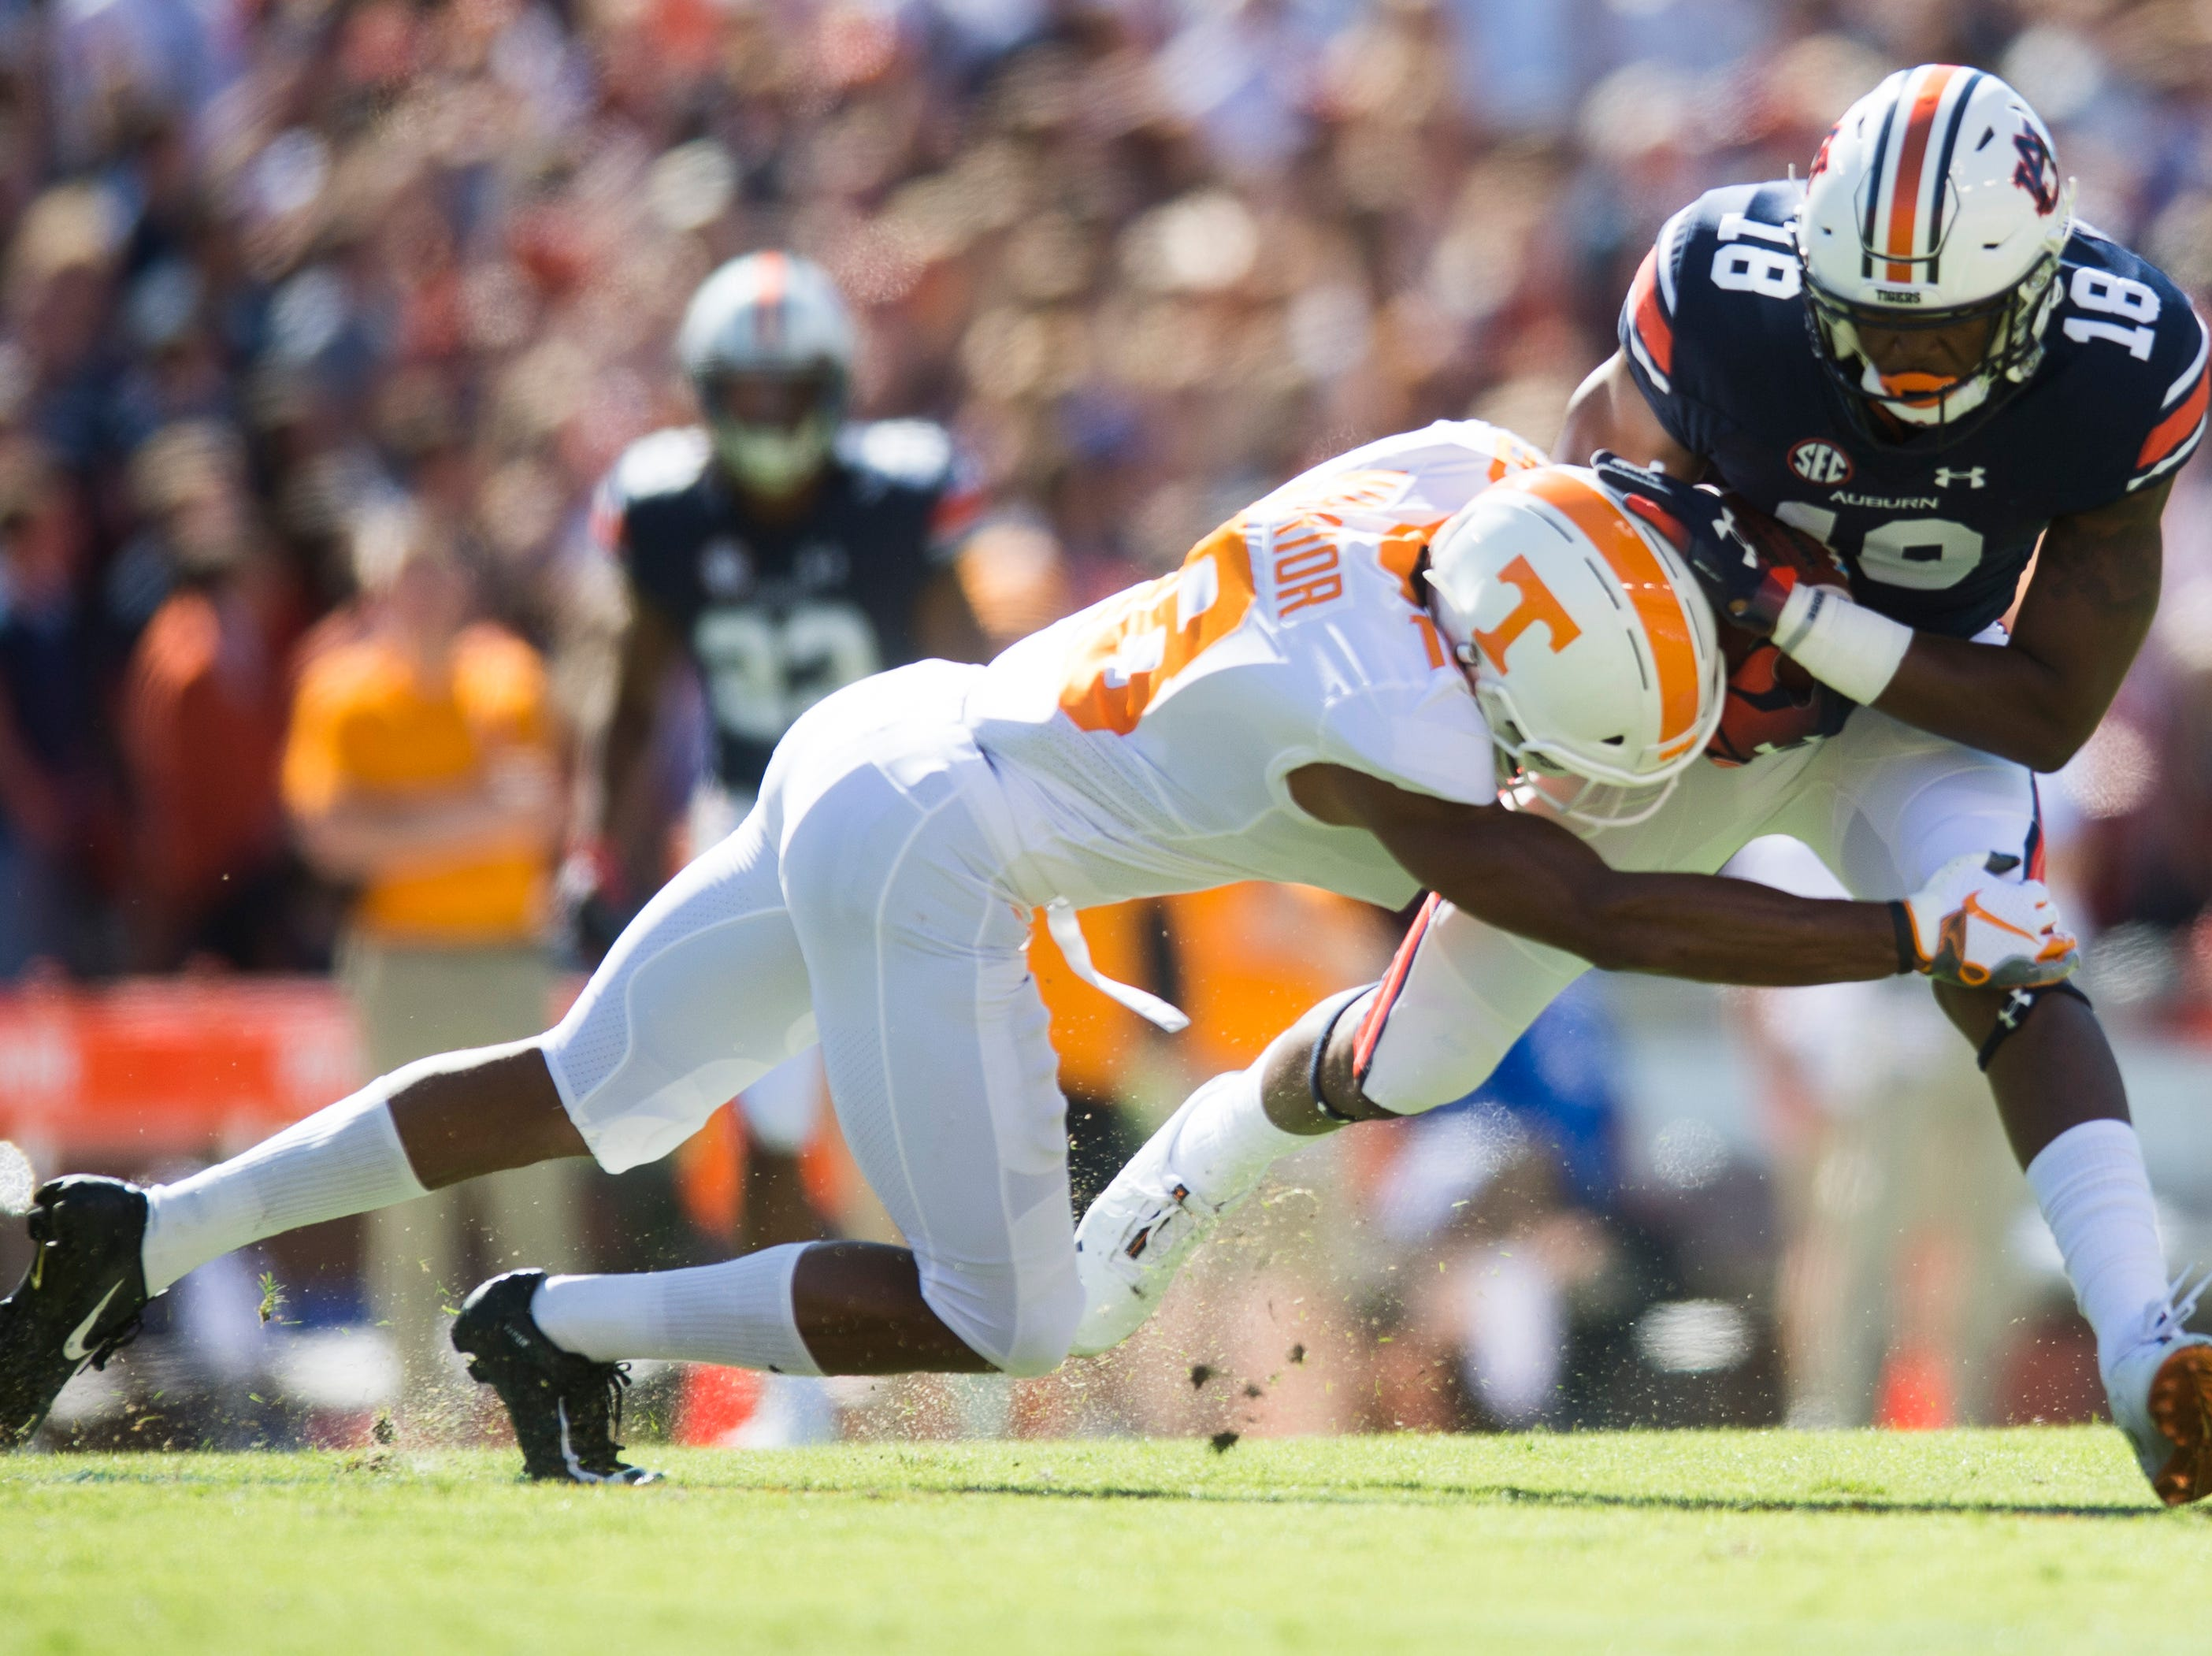 Tennessee defensive back Nigel Warrior (18) tackles Auburn wide receiver Seth Williams (18) during a game between Tennessee and Auburn at Jordan-Hare Stadium in Auburn, Alabama on Saturday, October 13, 2018.